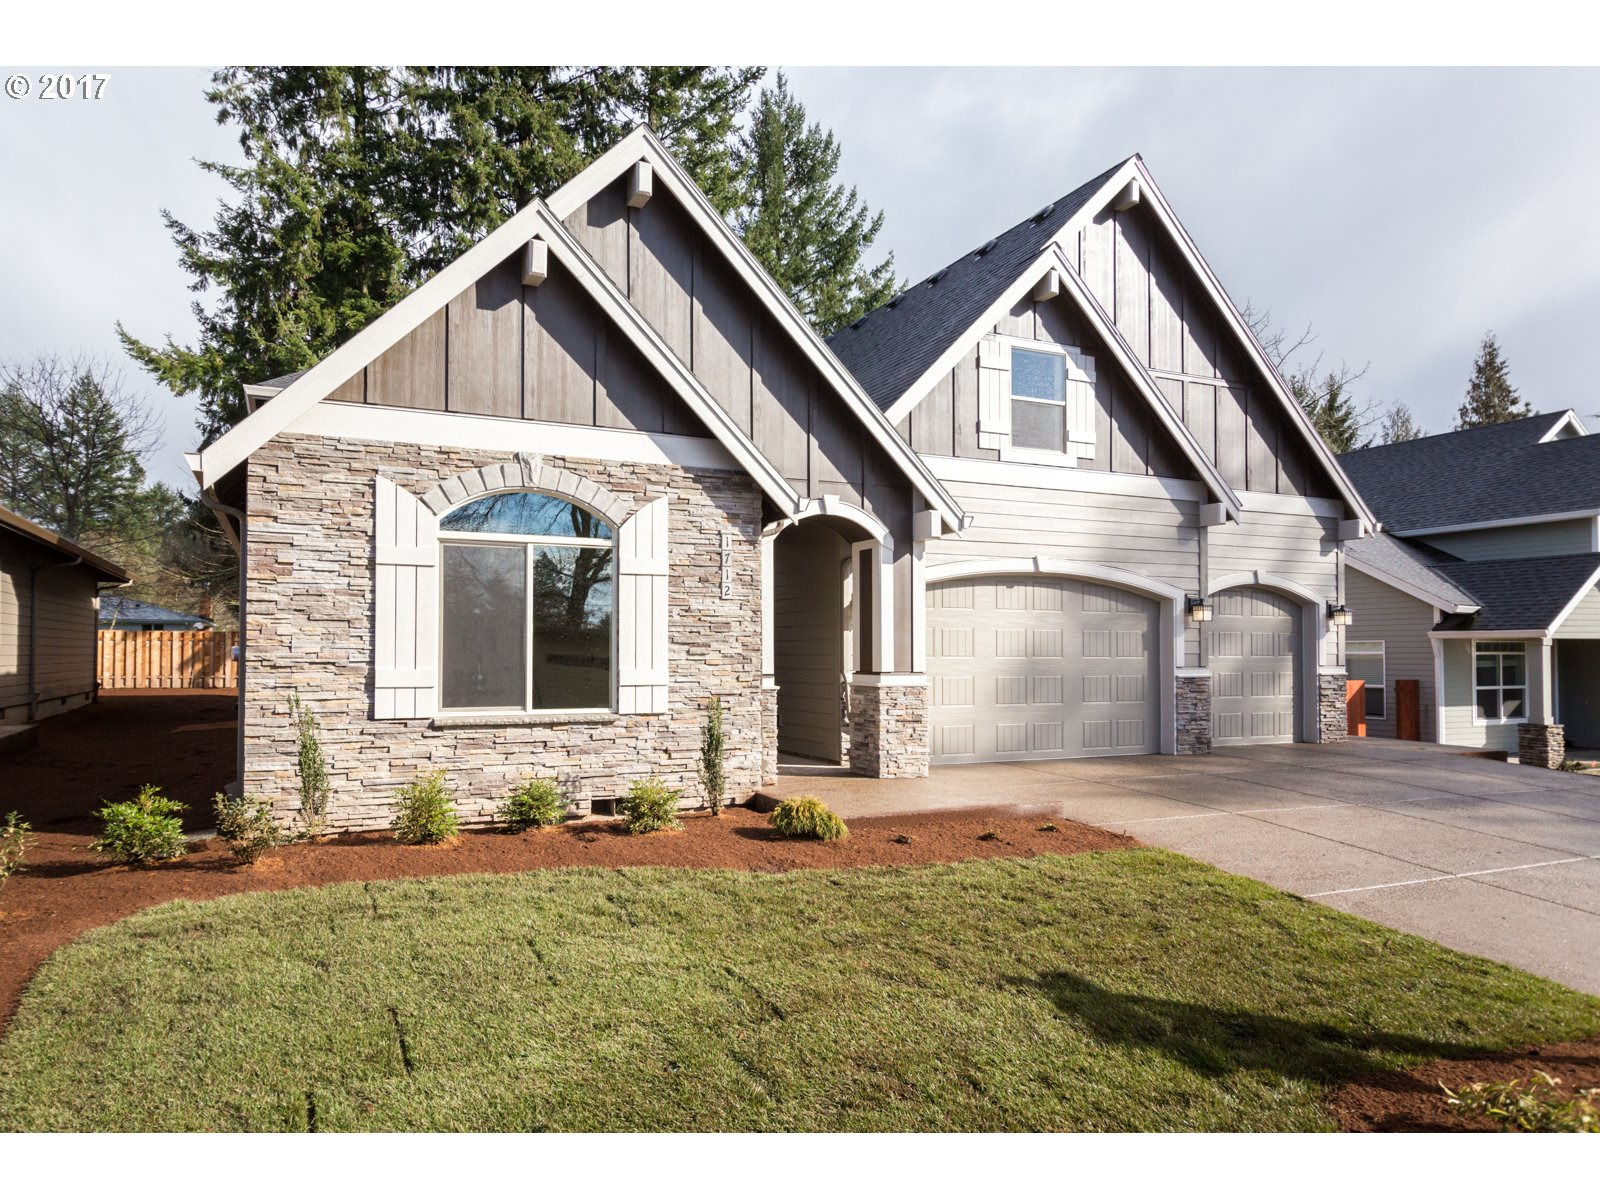 2942 sq. ft 5 bedrooms 3 bathrooms  House For Sale,Portland, OR